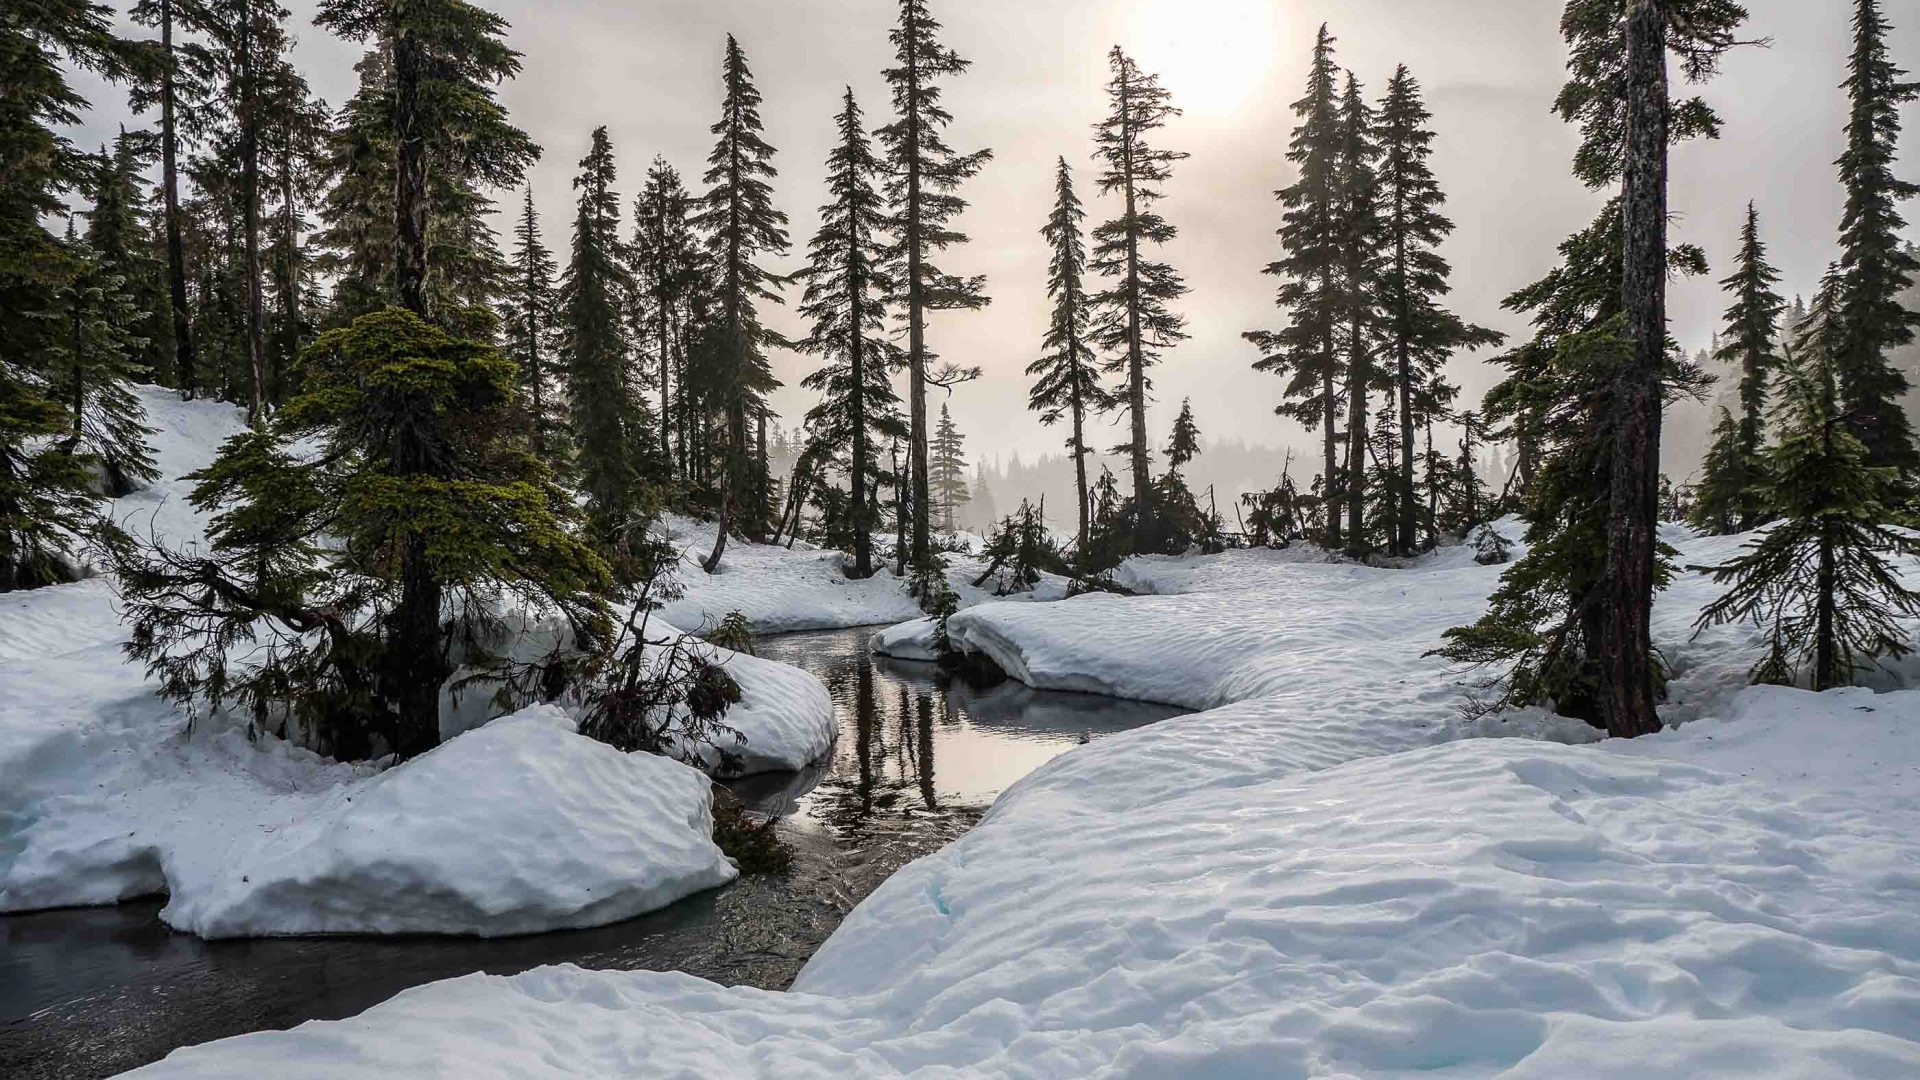 A small creek passes through snow and trees.